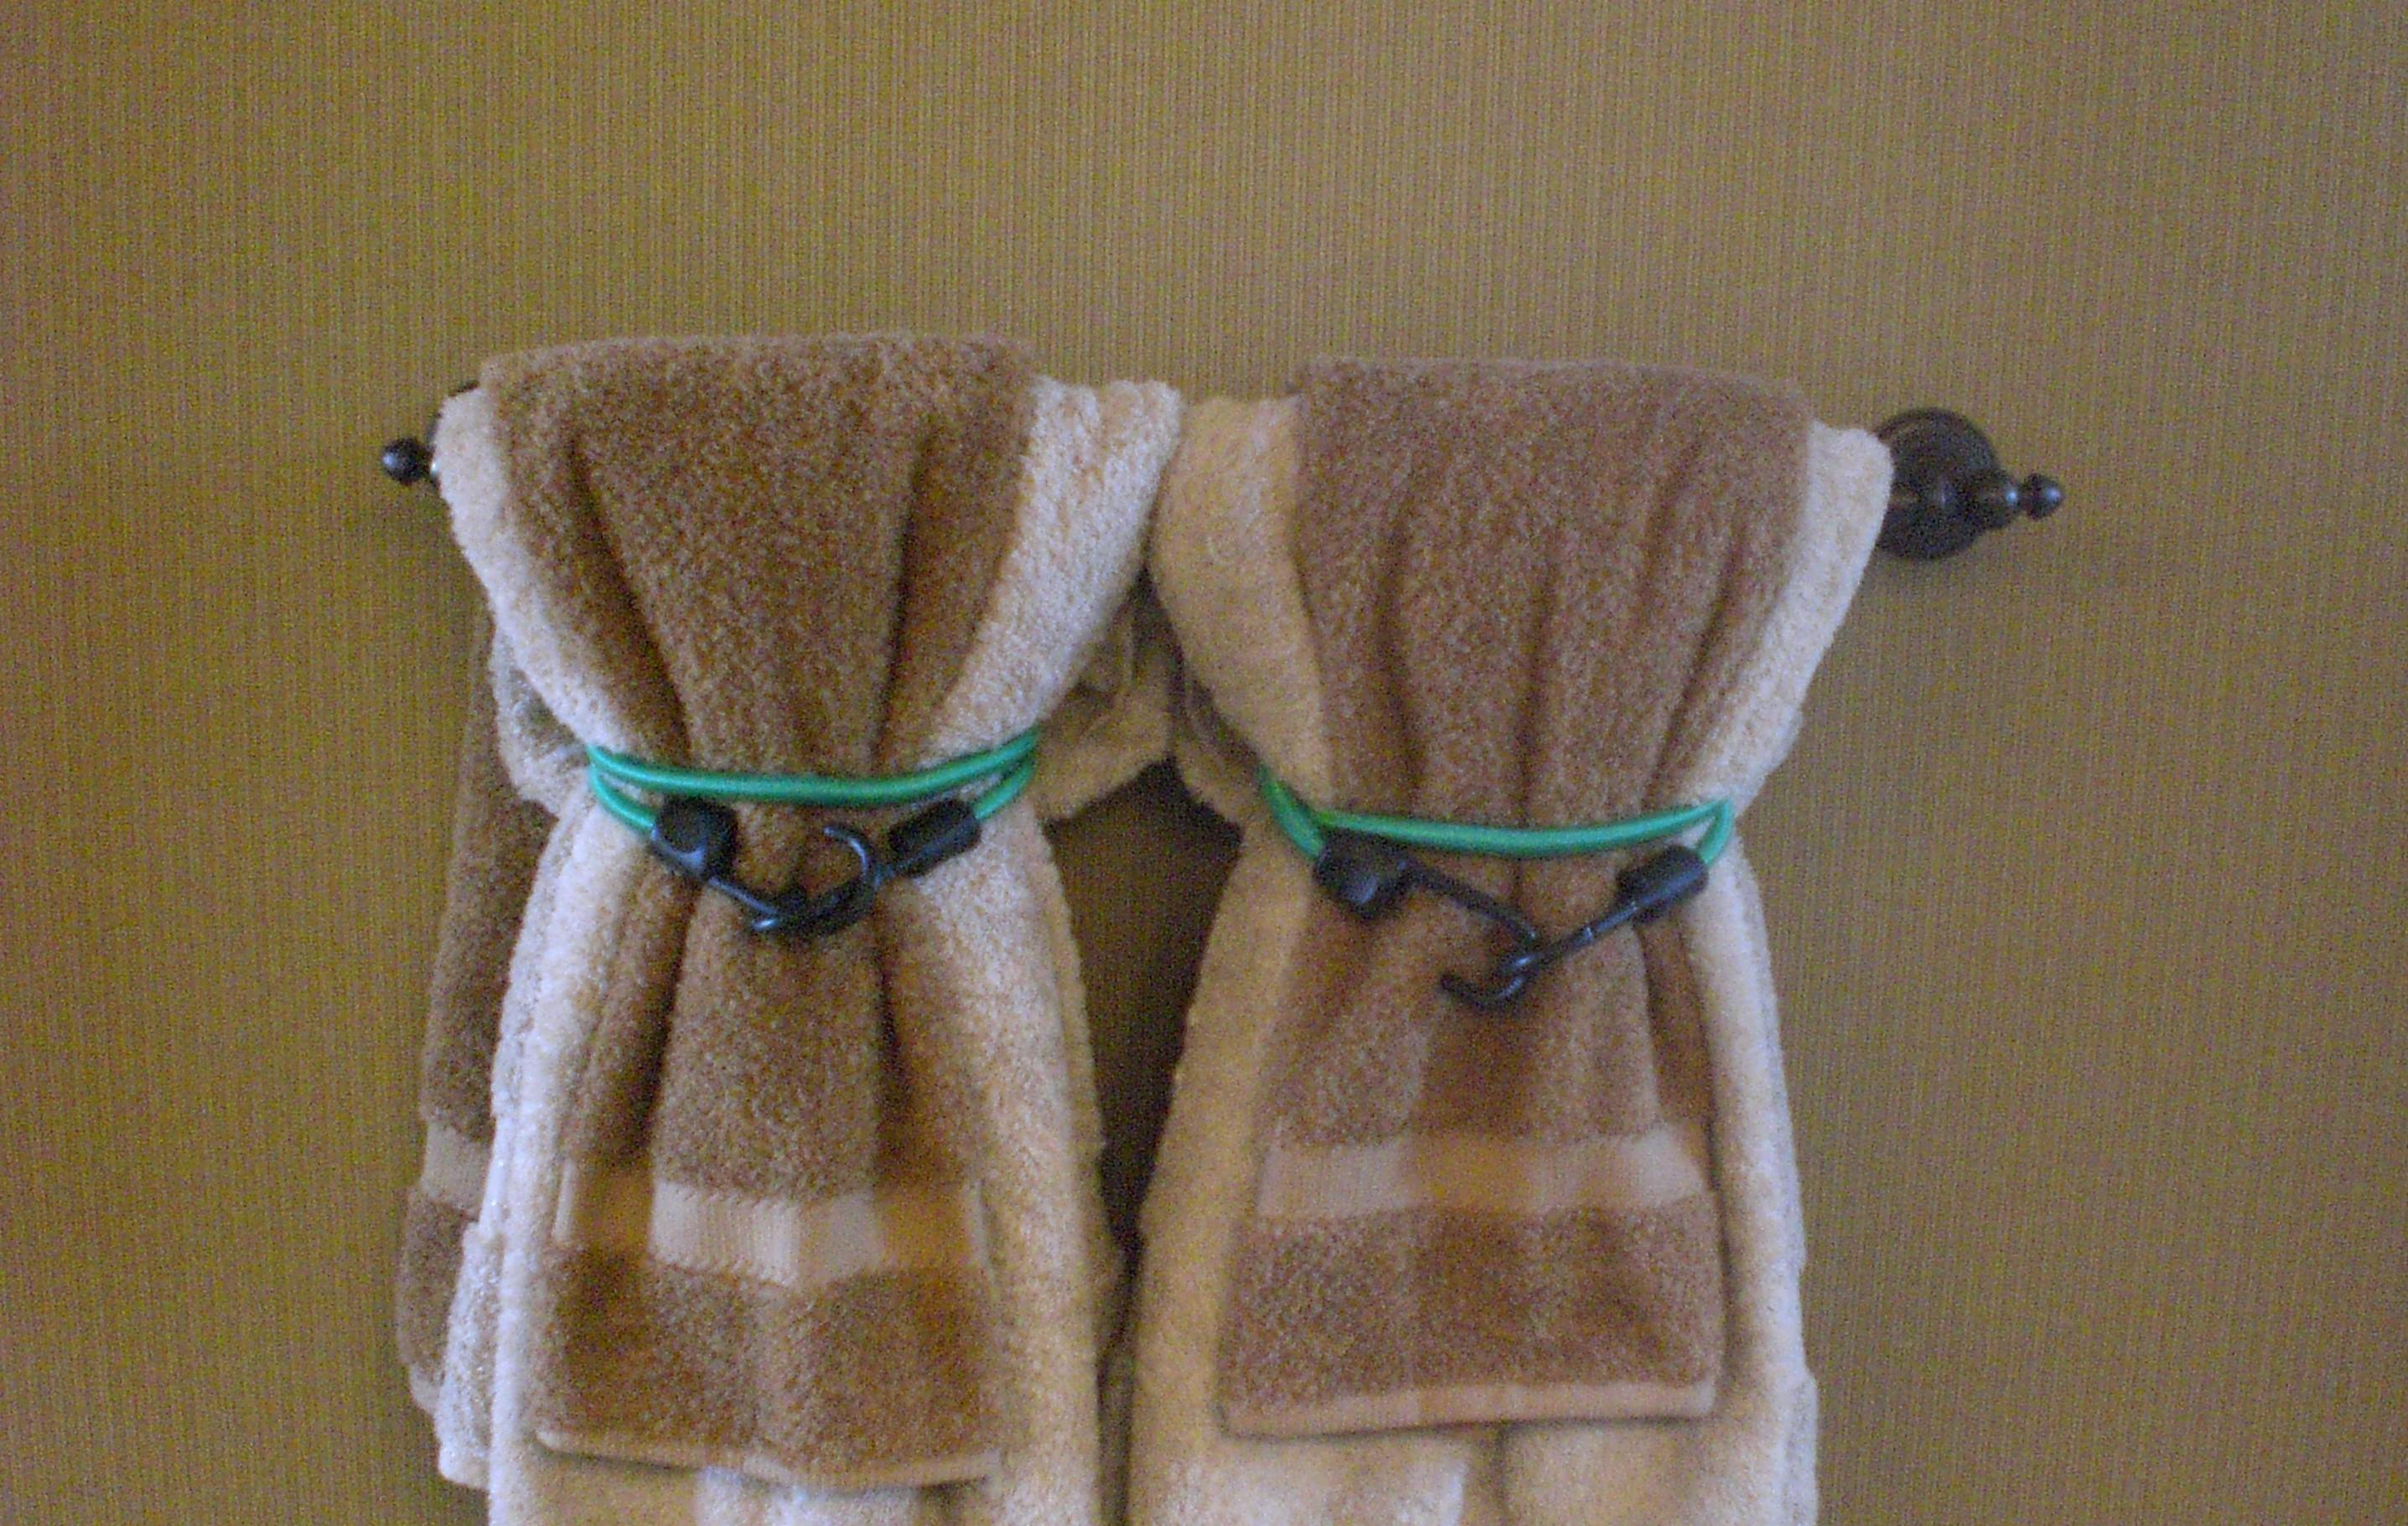 Towel Decorations Shaping Spaces Group Blog